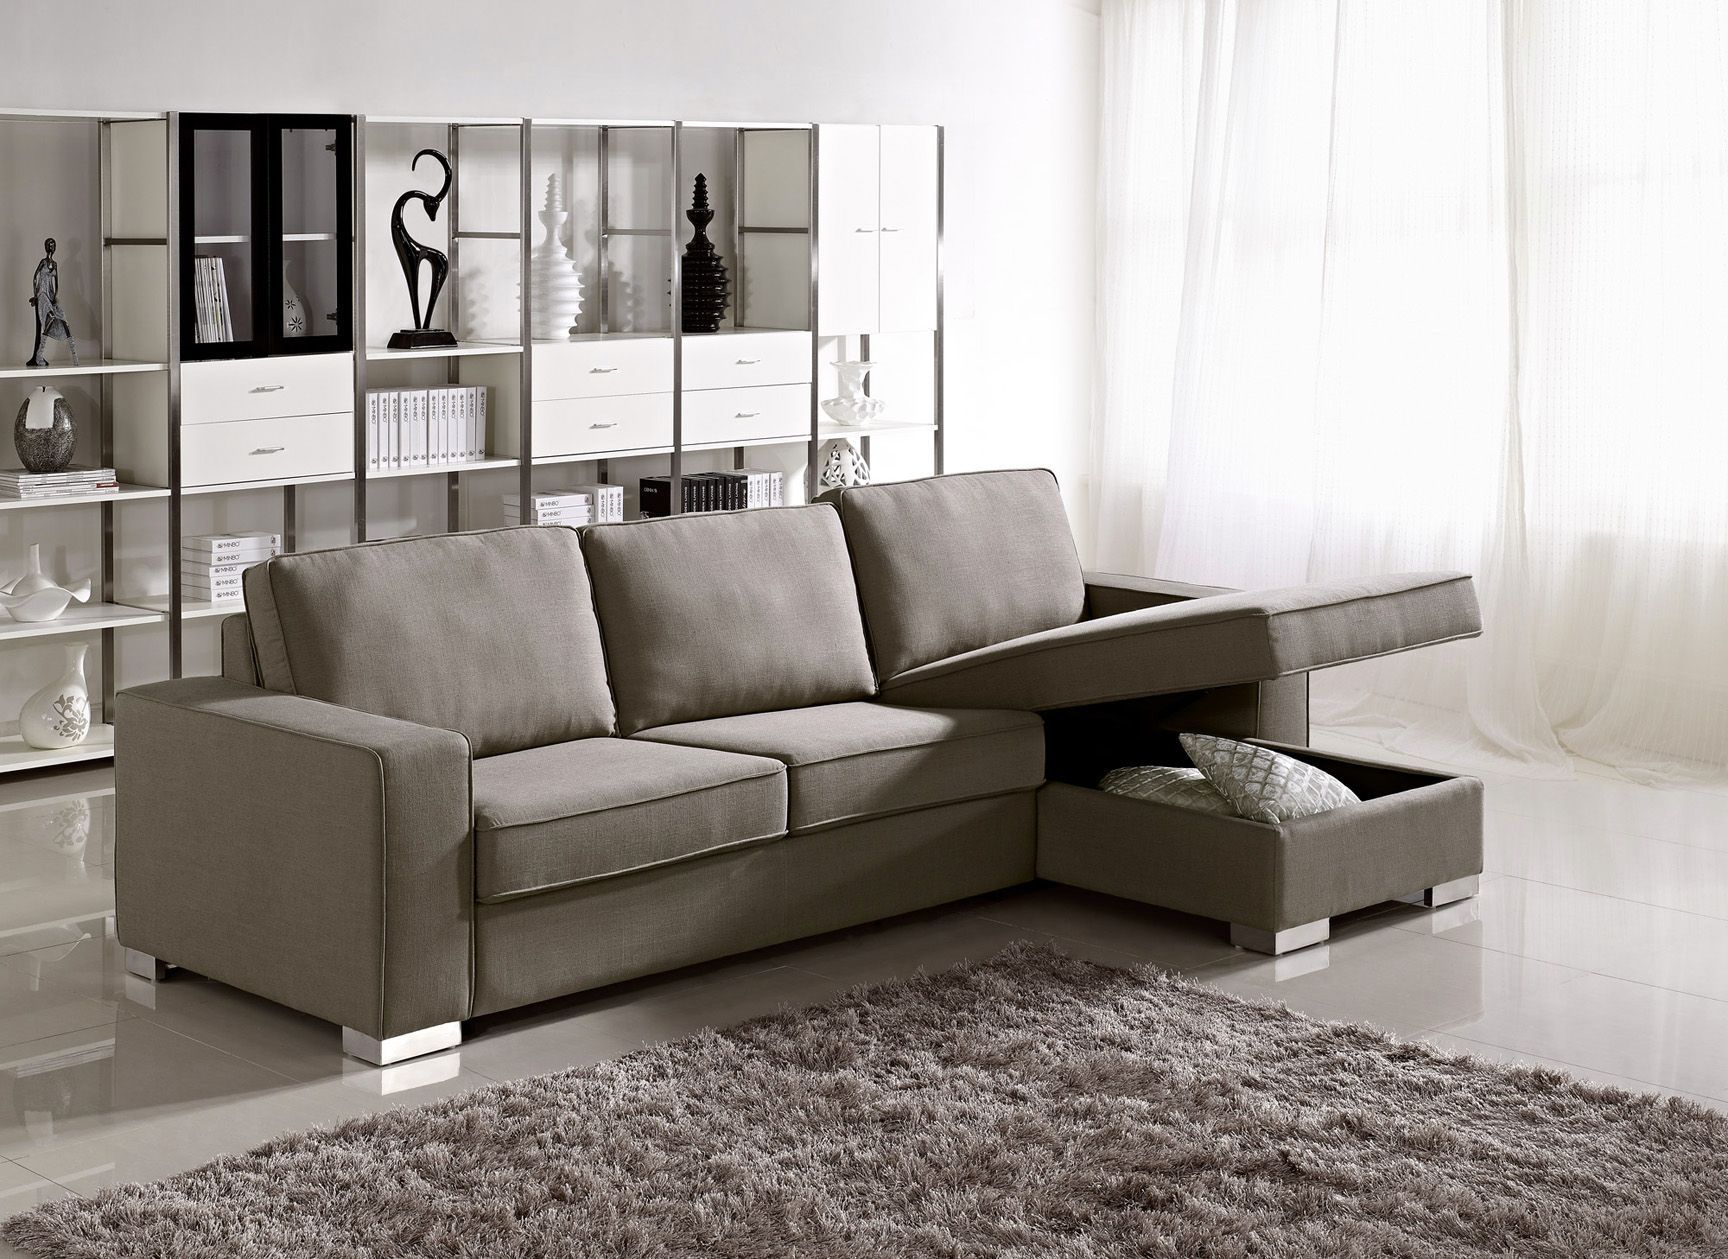 Apartment Size Sleeper Sofa Design | HomesFeed